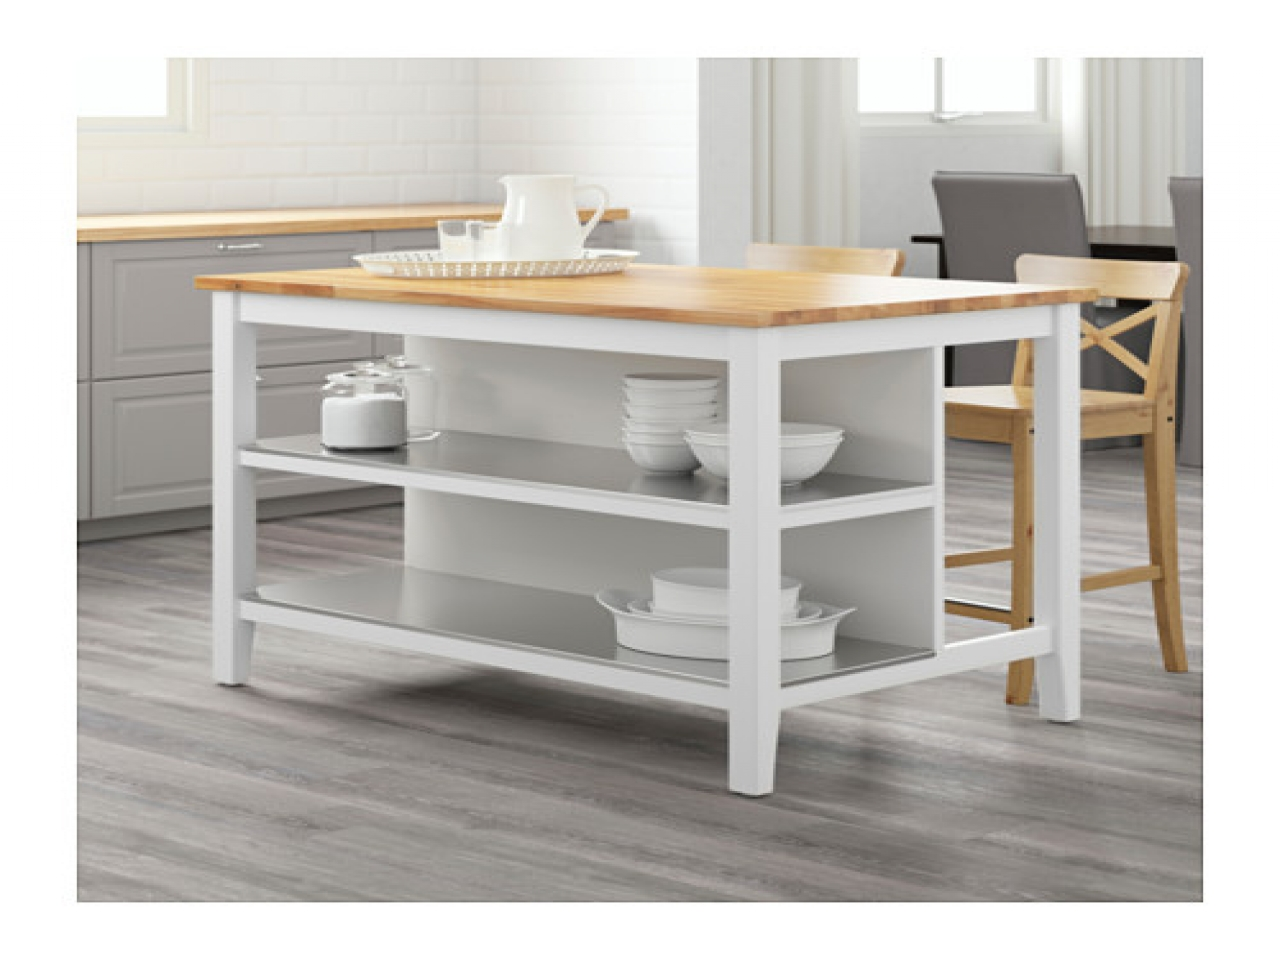 Butcher Block Kitchen Island Ikea | Stenstorp Kitchen Island | Ikea Portable Island